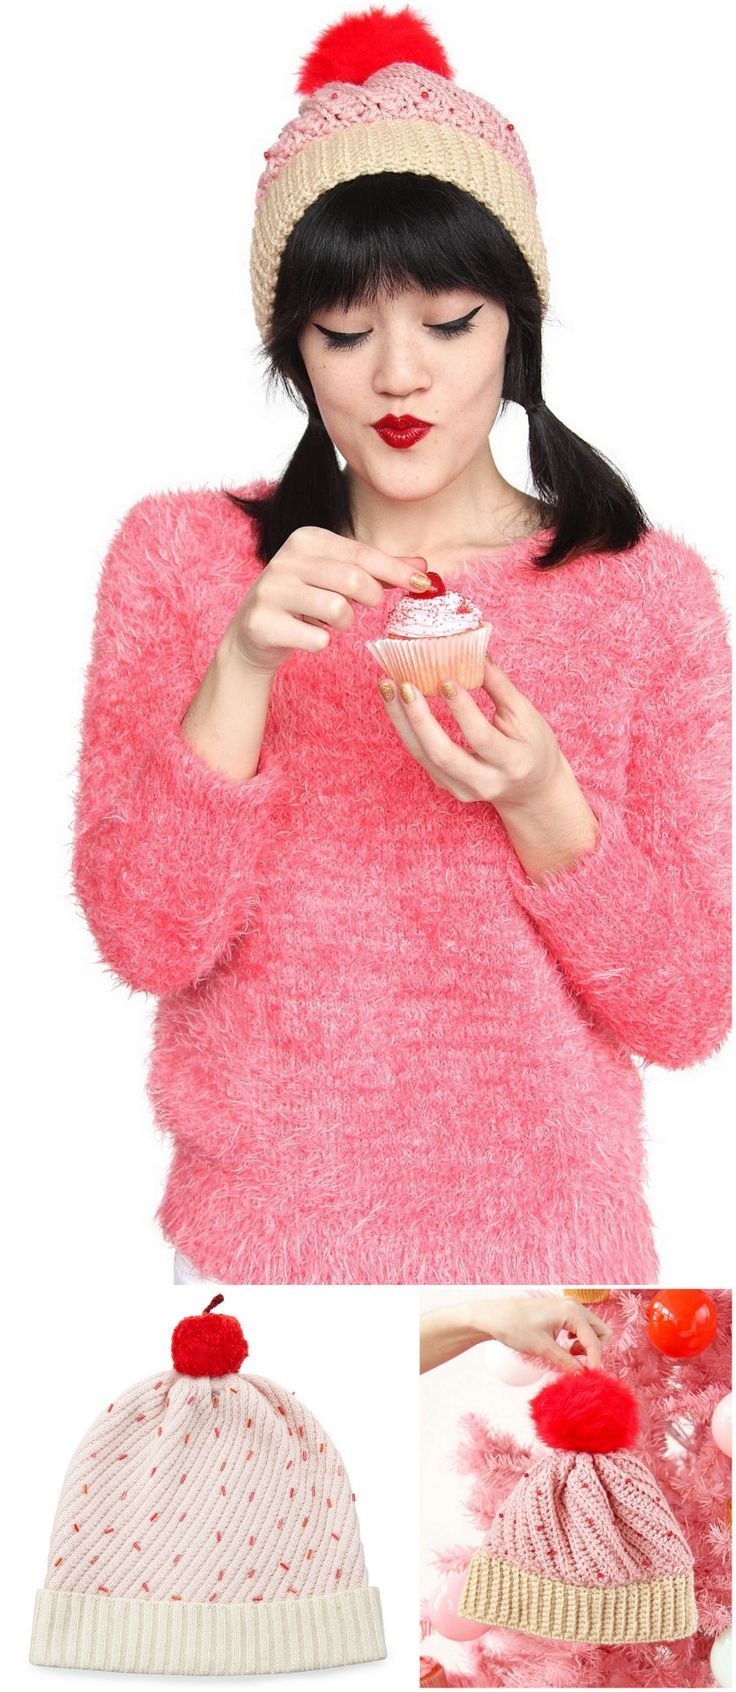 DIY Crochet Kate Spade Cupcake Hat Free Pattern from Aww, Sam. Make a DIY crocheted inspired version of Kate Spade's Cupcake Hat. I personally like Sam's version better. • Top Photo: DIY by Aww,...                                                                                                                                                                                 More